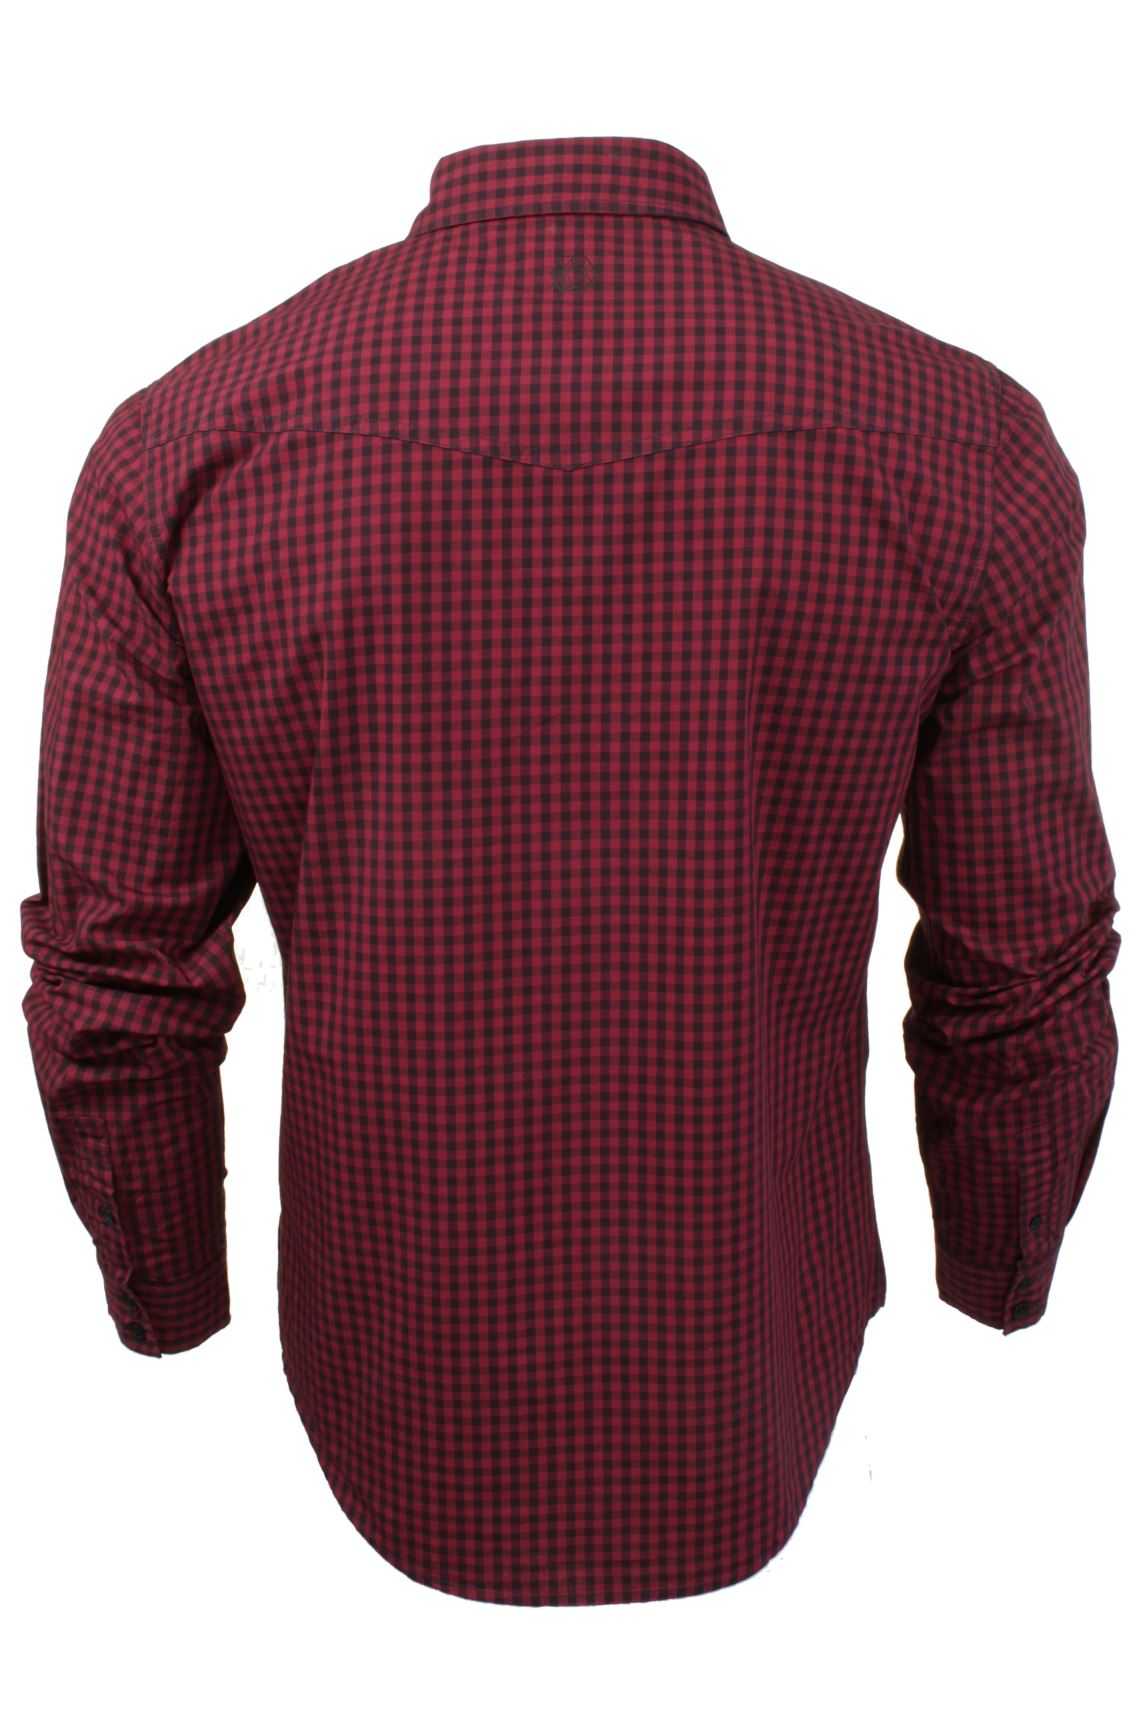 Mens-Check-Shirt-by-Smith-amp-Jones-039-Porticus-039-Long-Sleeved thumbnail 8